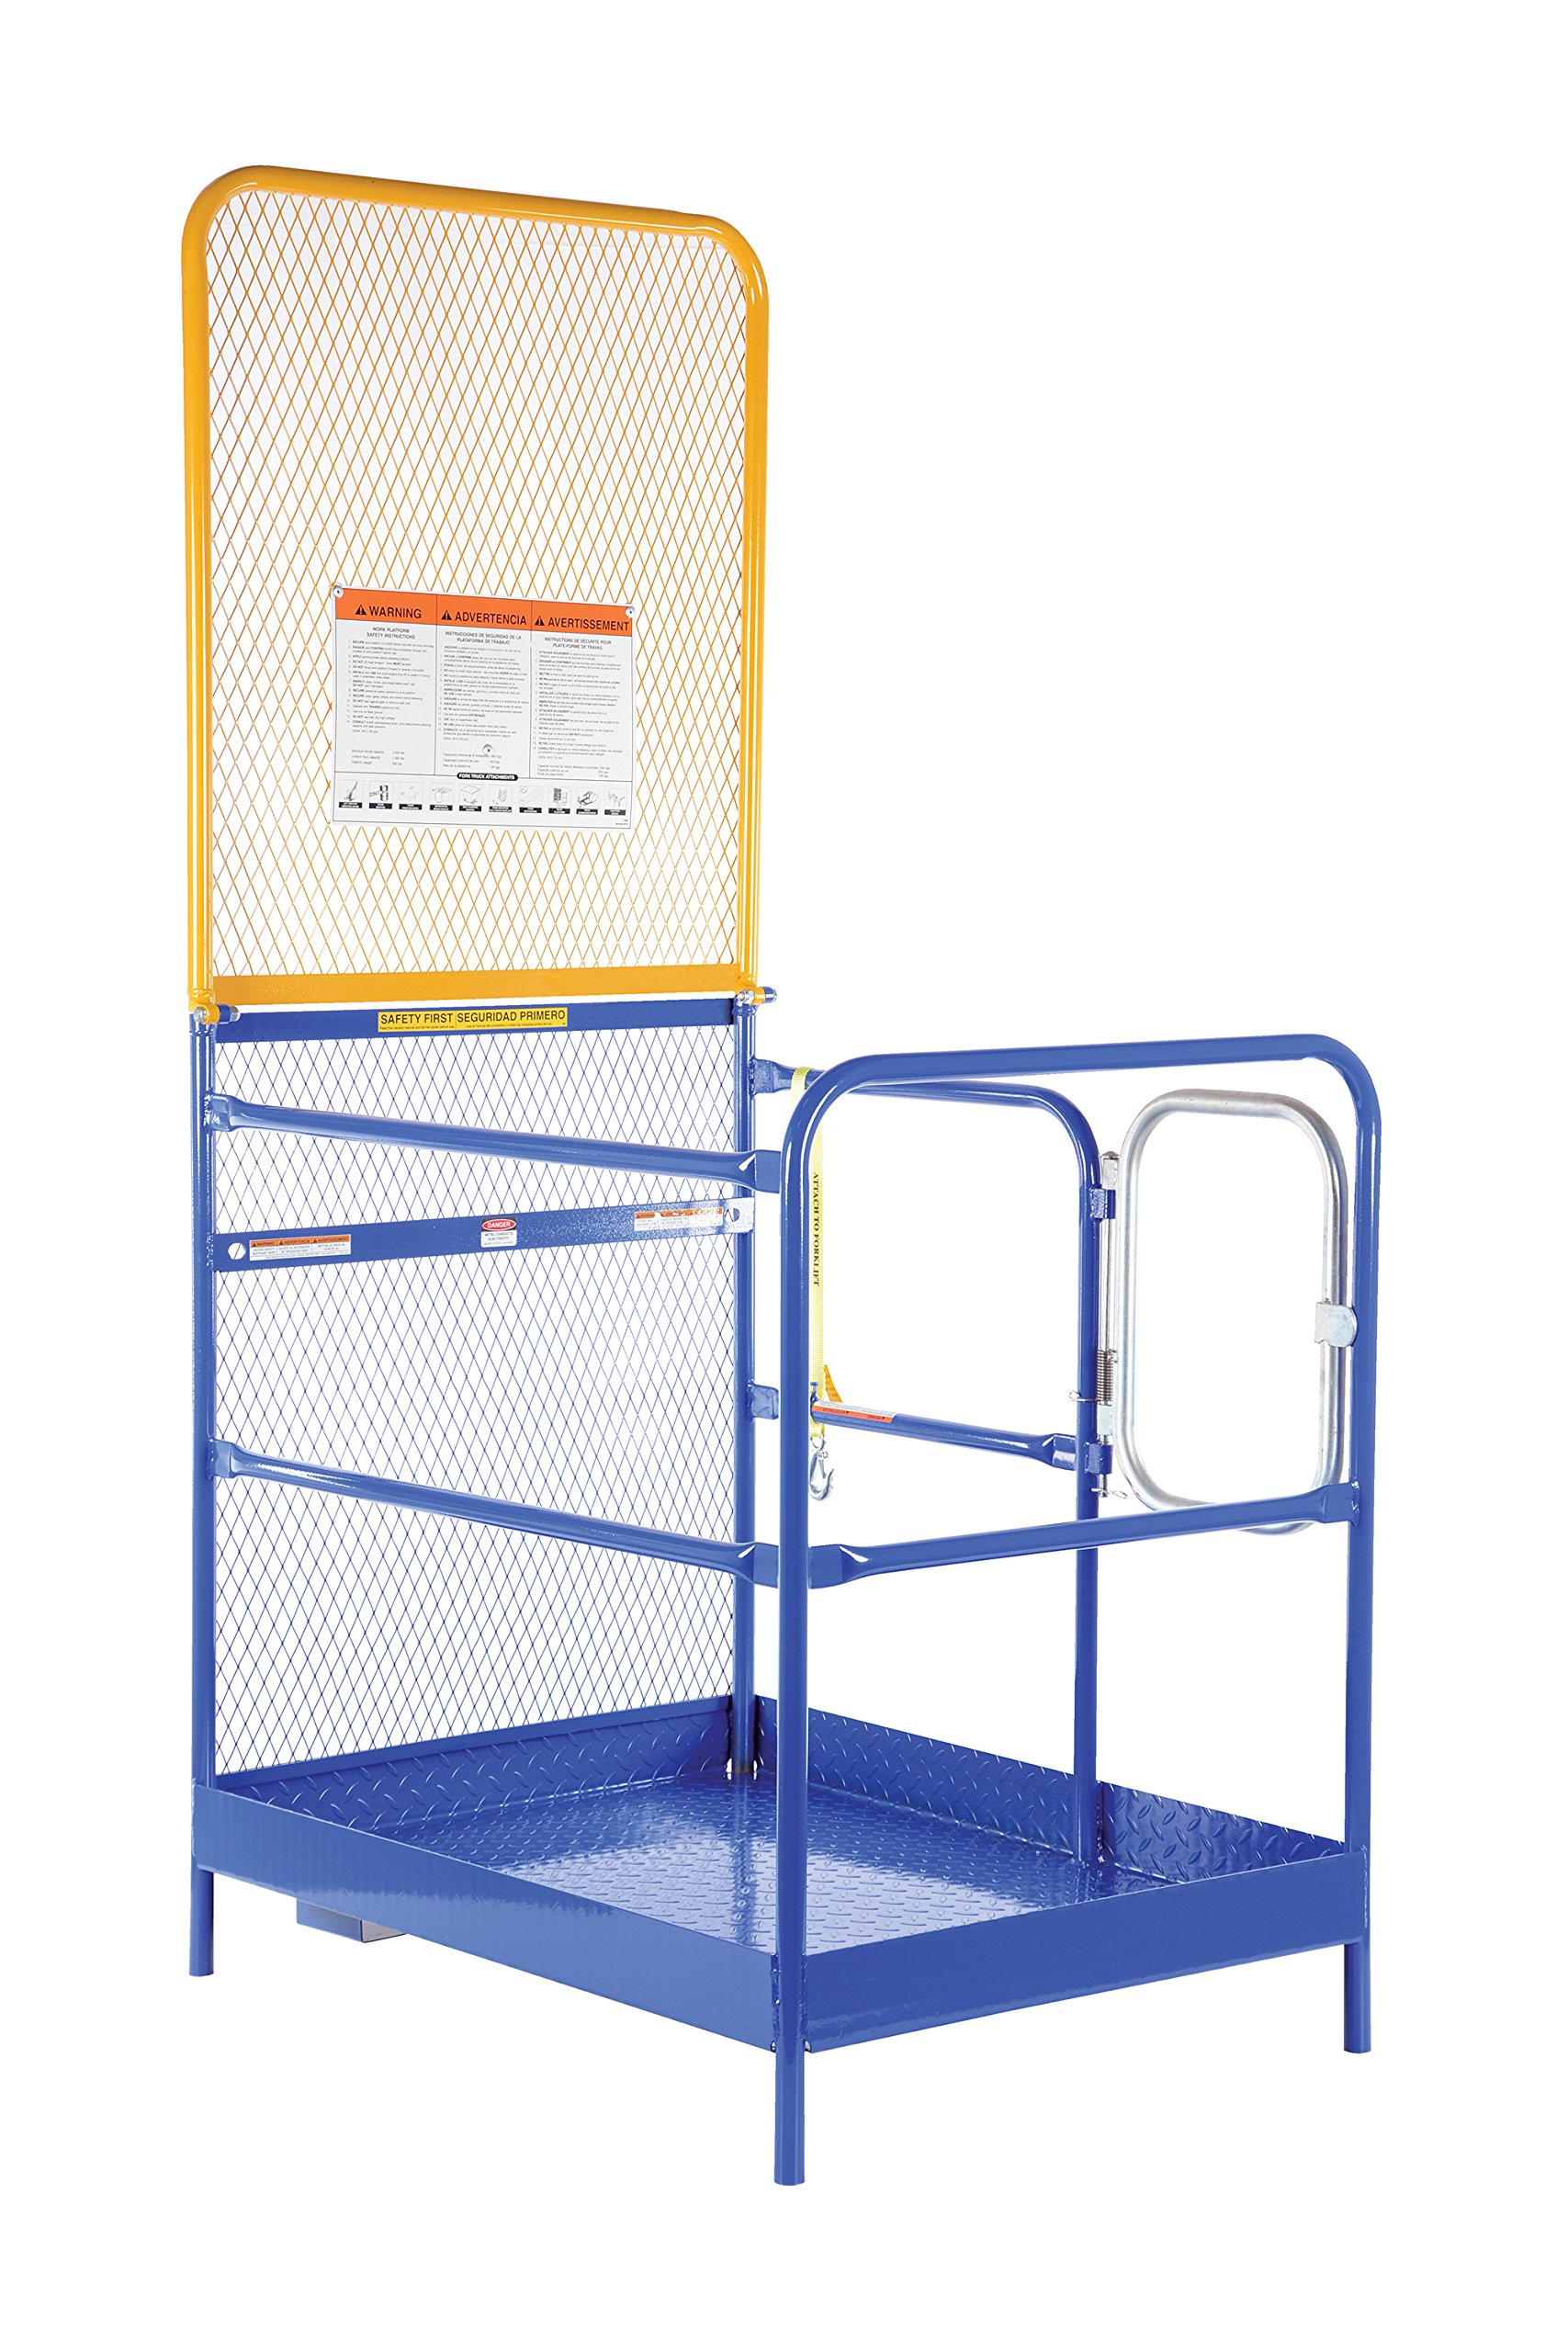 Vestil WP-3636-84B Steel Work Platform, 1000 lb Capacity, 36'' x 36'' with 84'' Back, Powder Coat Blue